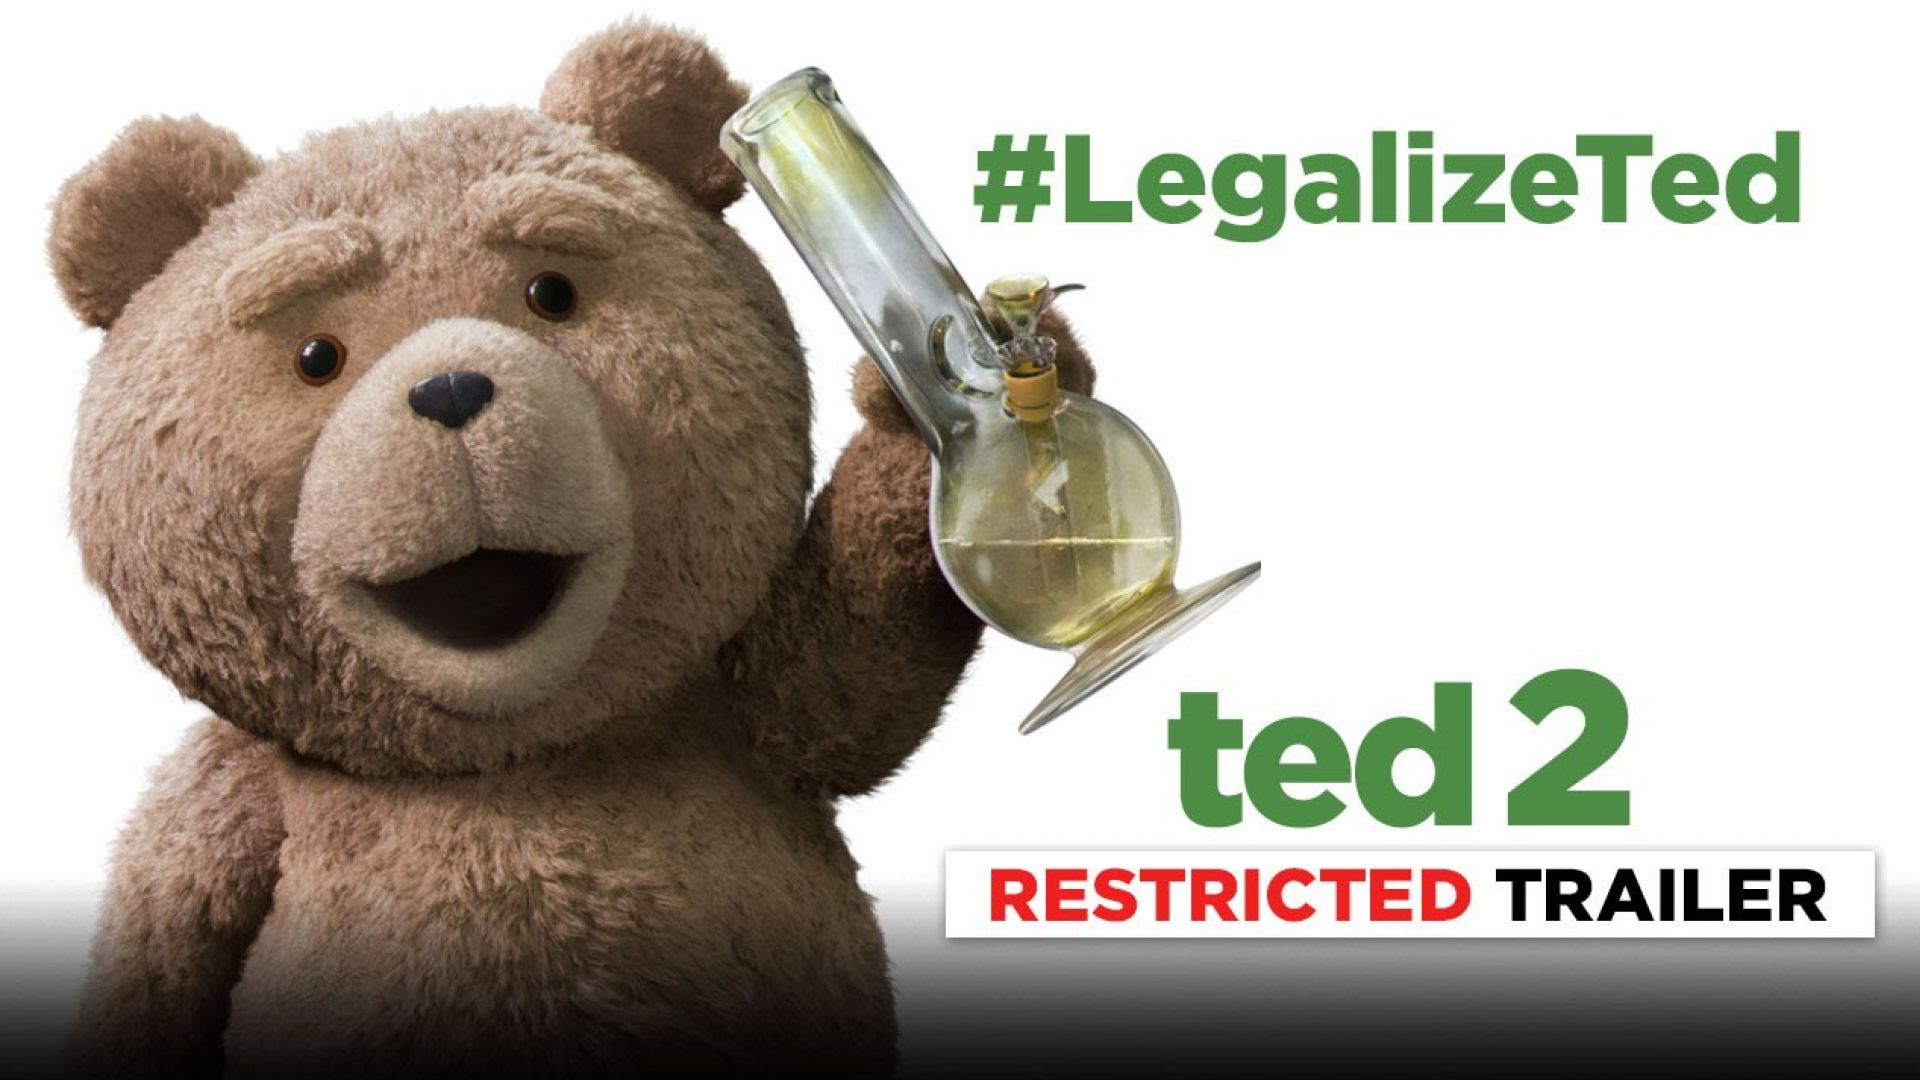 Drugs and Tom Brady Feature in New Red Band Trailer for 'Ted